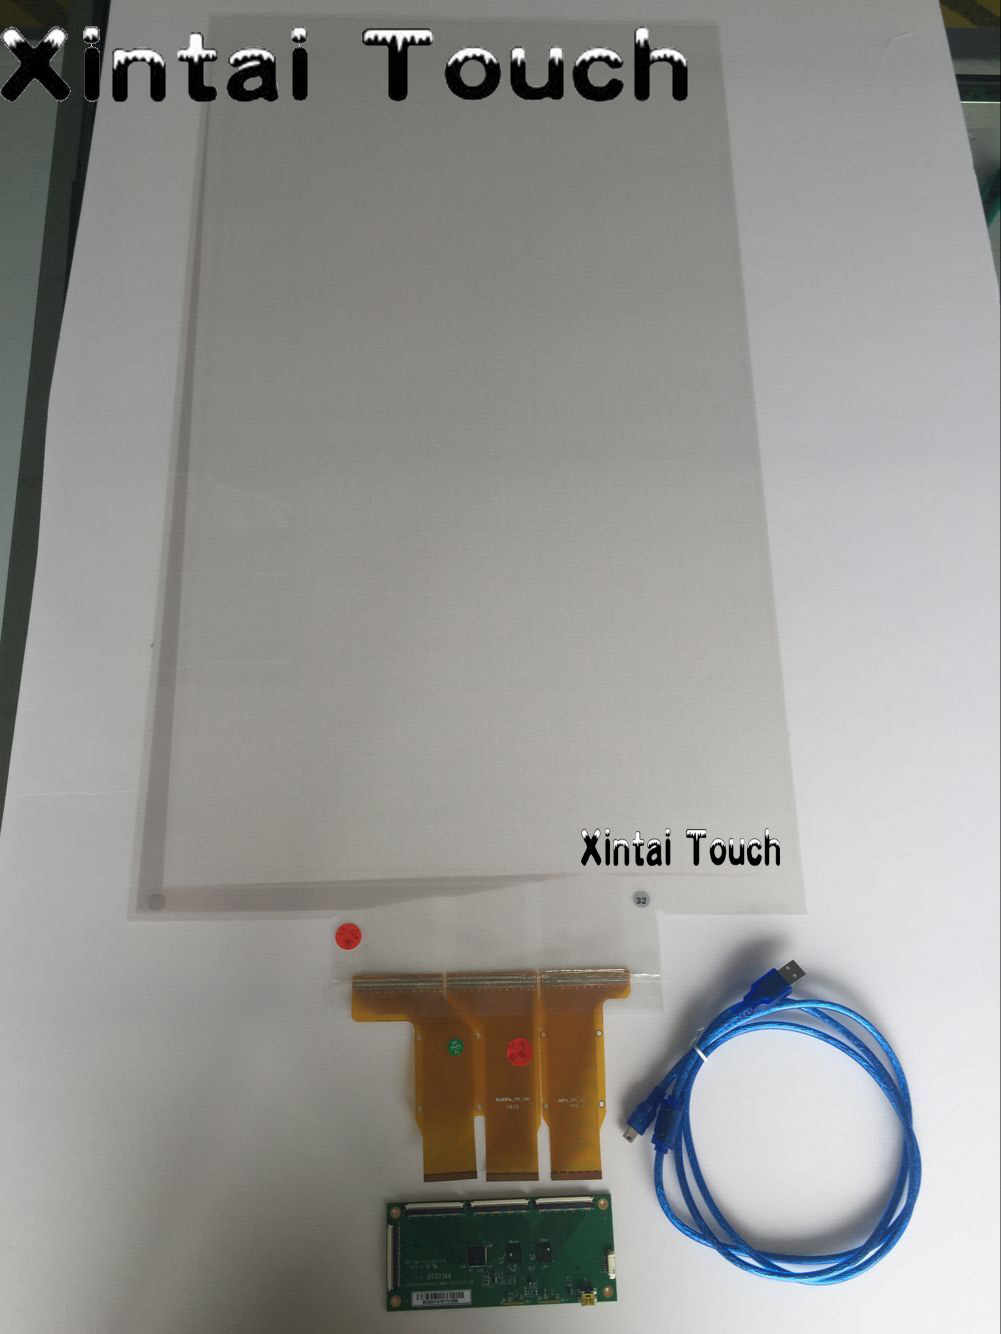 On sale! Interactive Dual touch foil Film through glass, 37 16:9 format for touch kiosk, table etc